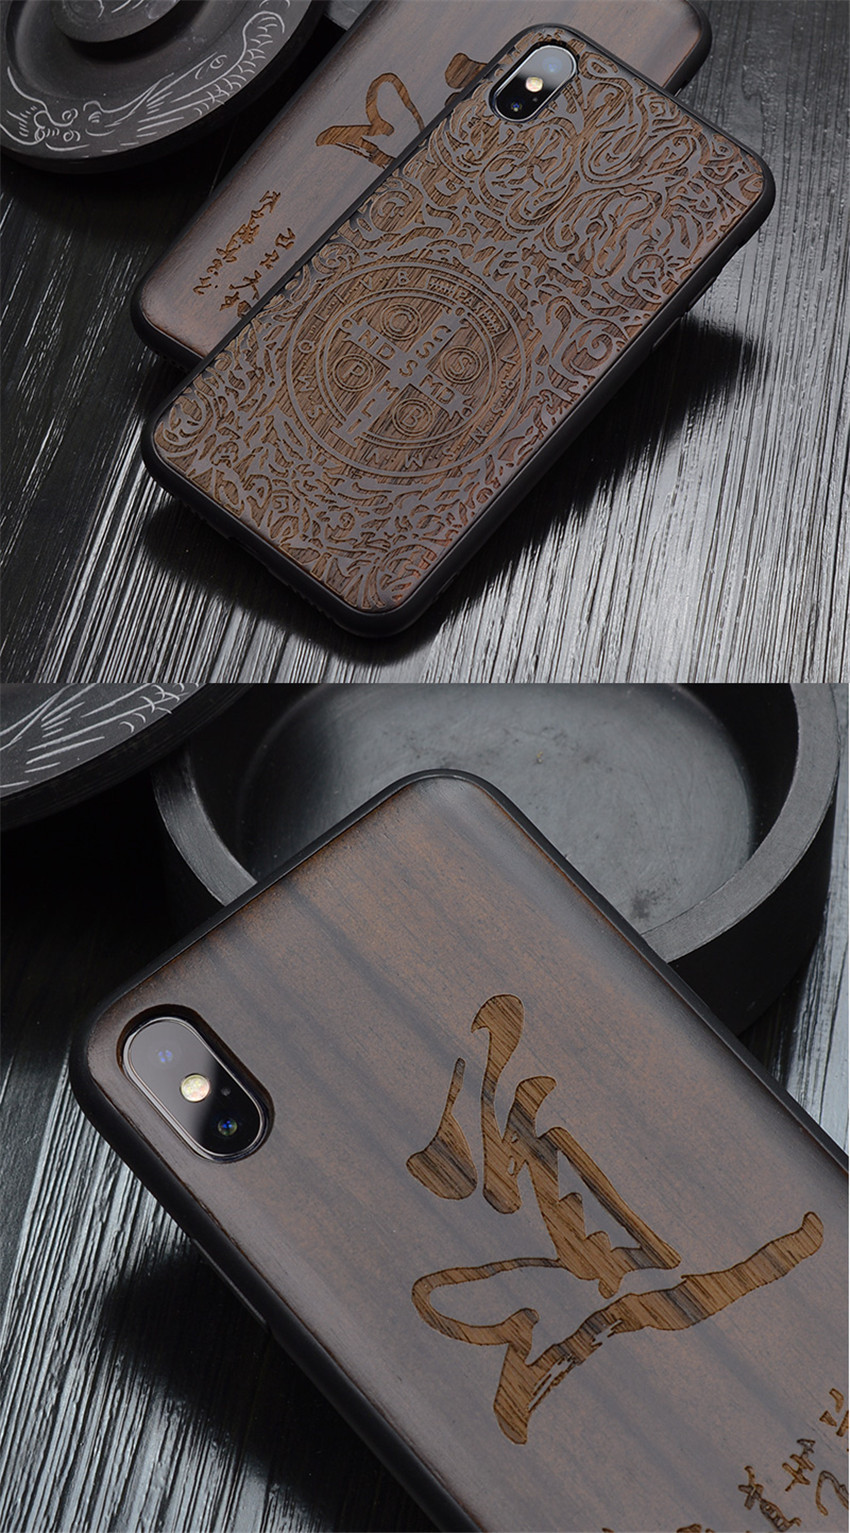 2018 New For iPhone X Case Black Ebony Wood Cover For iPhone X iPhone 10 Carved TPU Bumper Wooden Protective Case 5 (9)